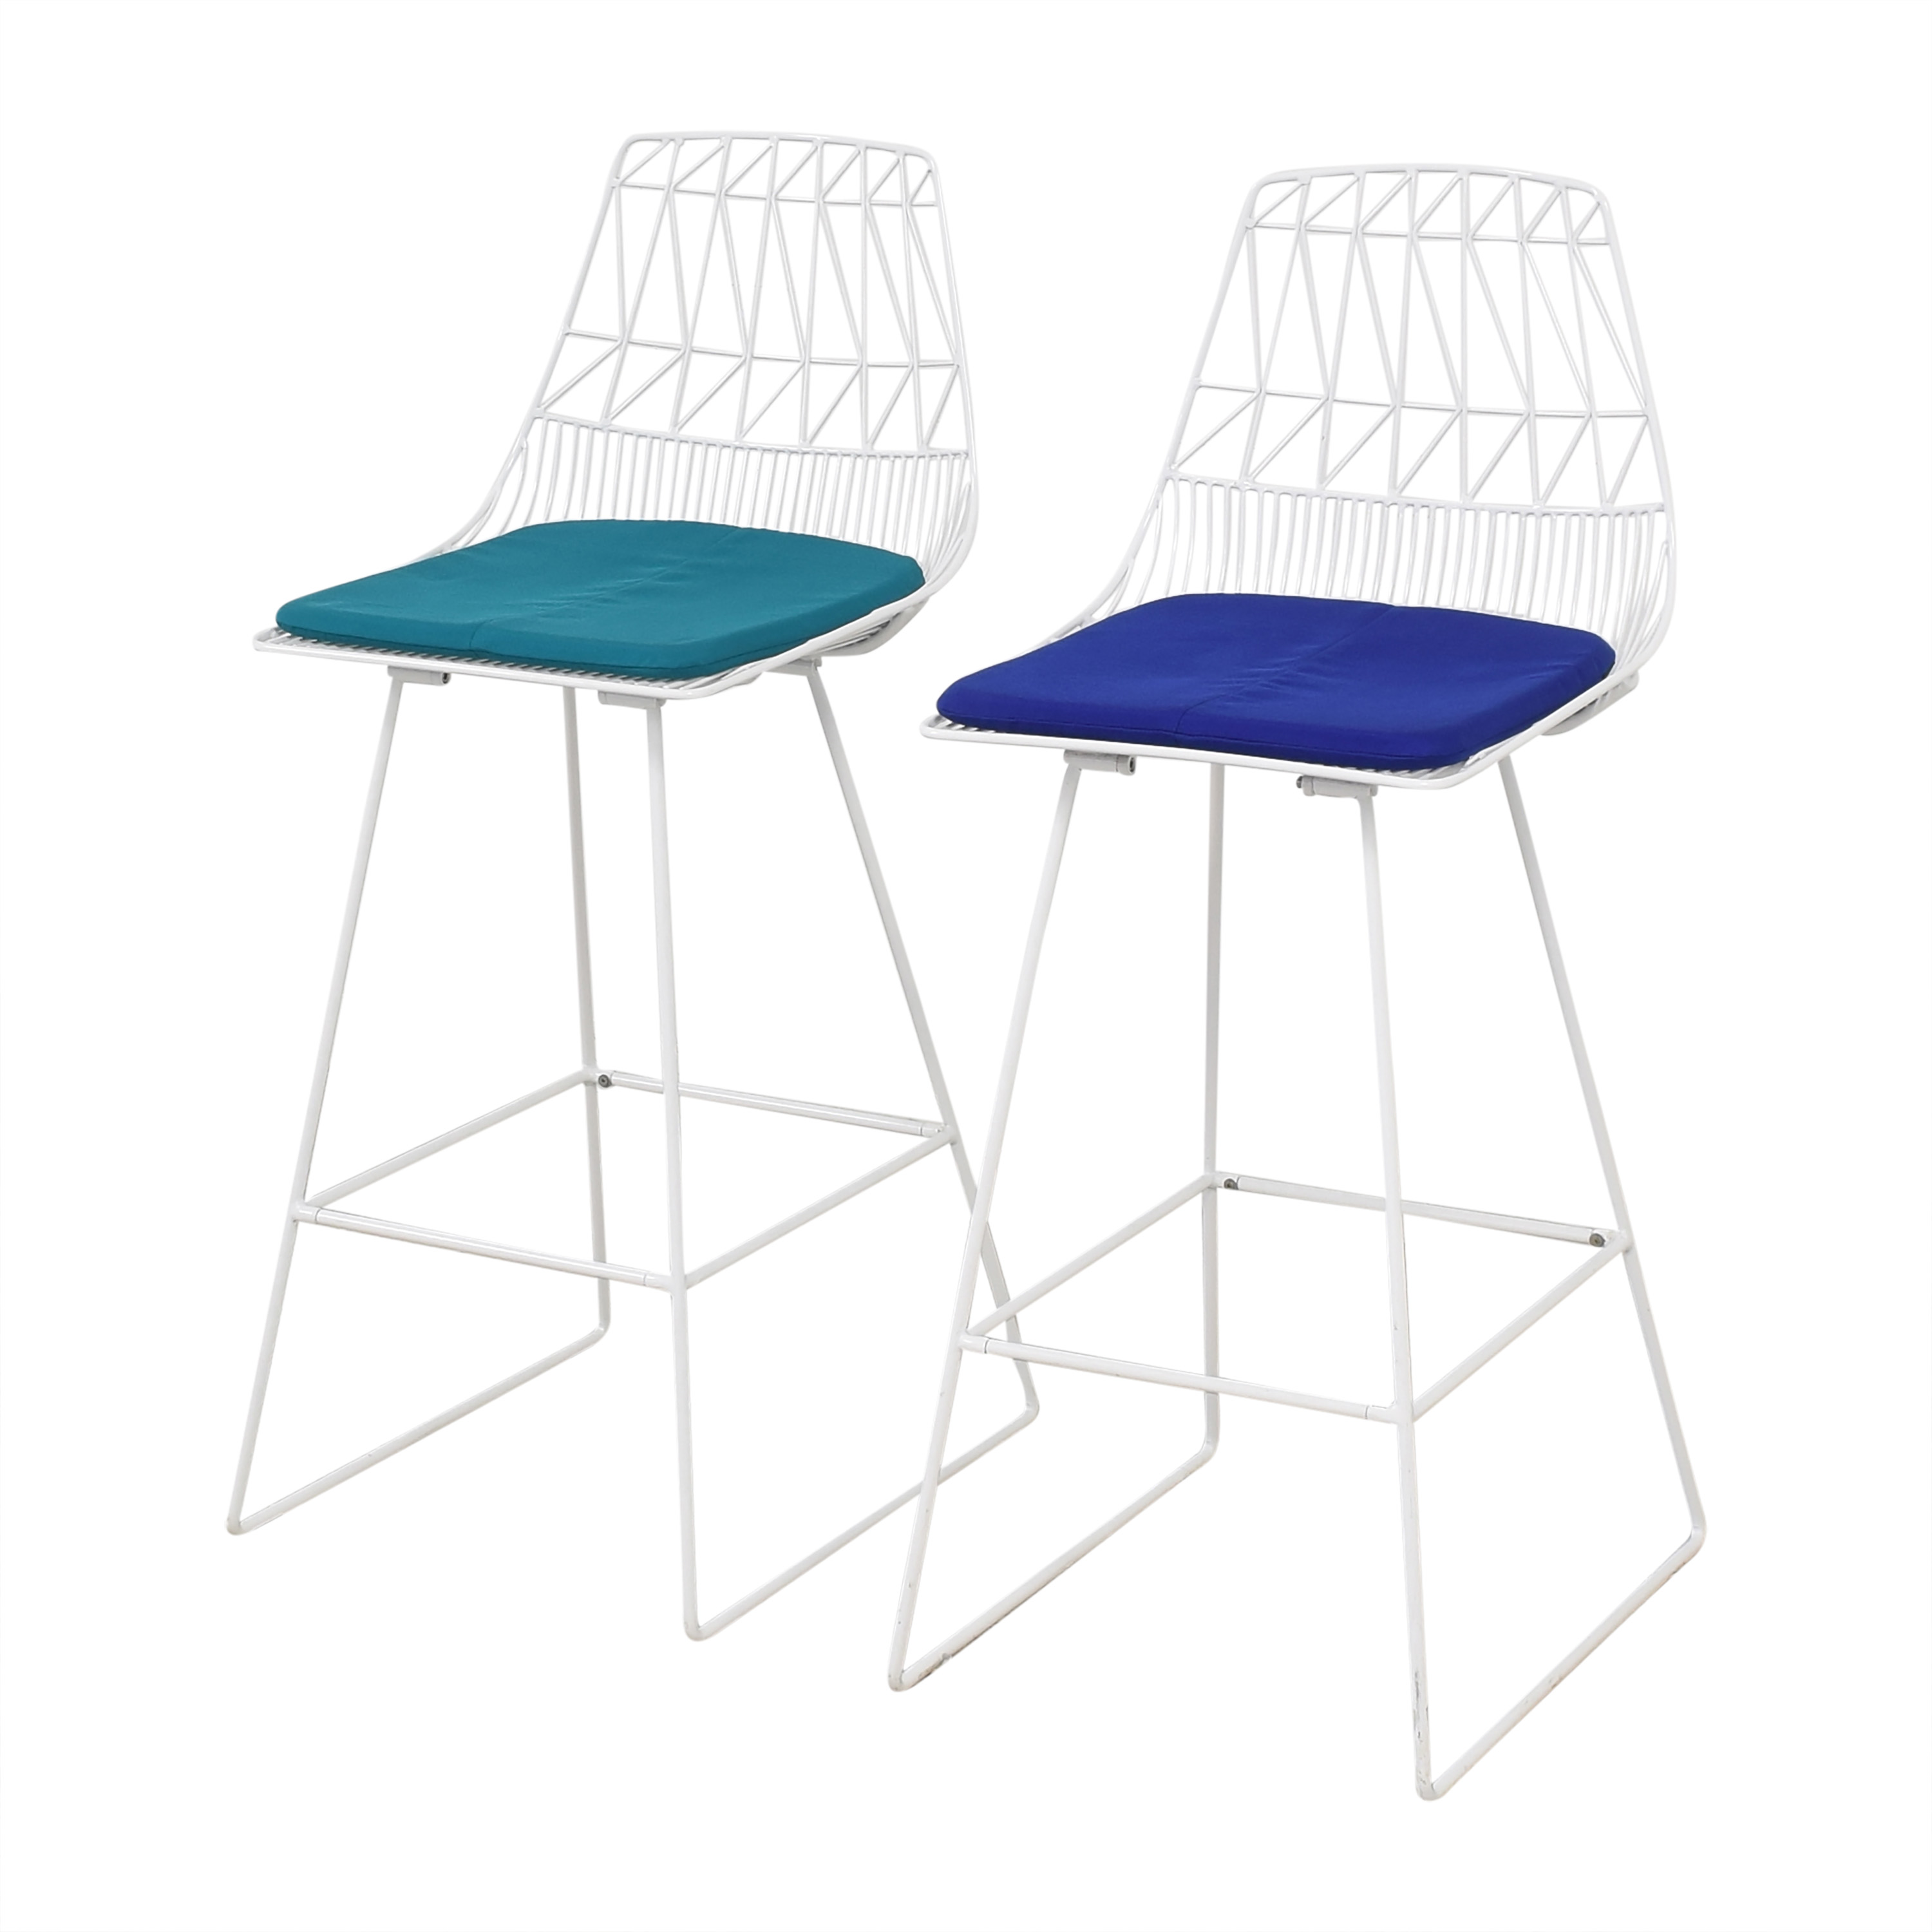 Bend Good Lucy Bar Stools with Cushions / Chairs